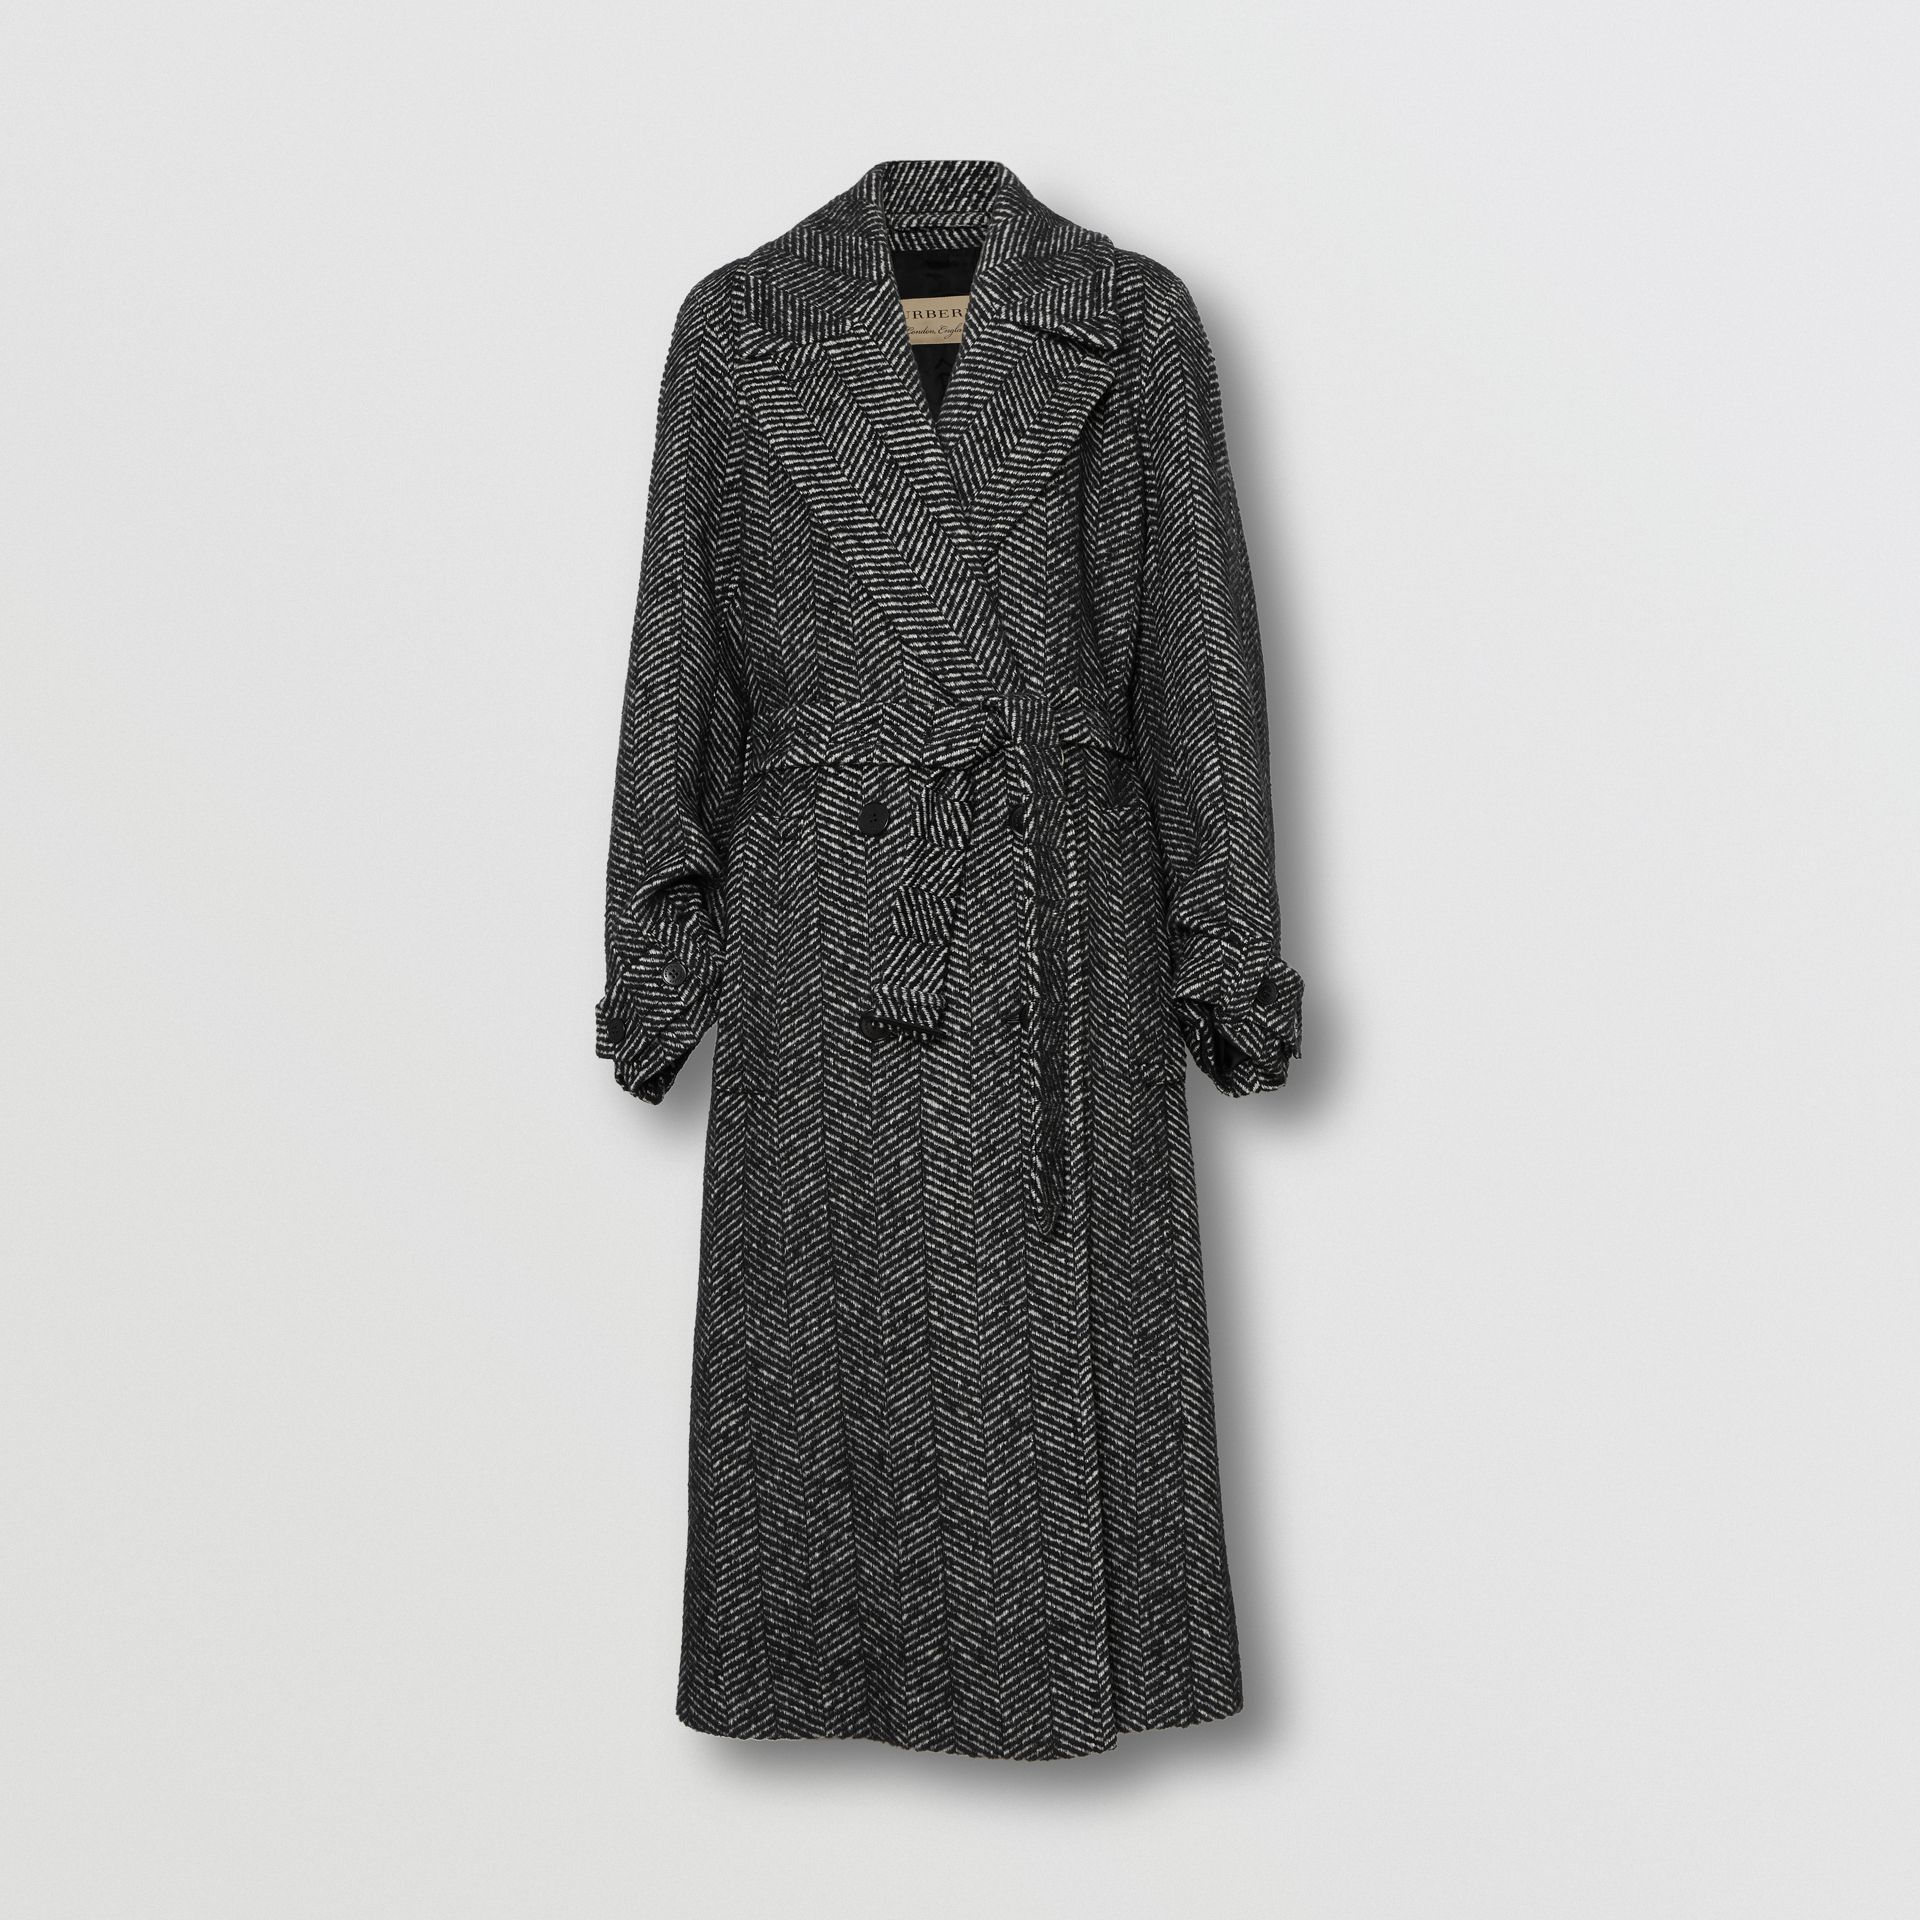 Herringbone Wool Silk Blend Double-breasted Coat in Black - Women | Burberry - gallery image 3